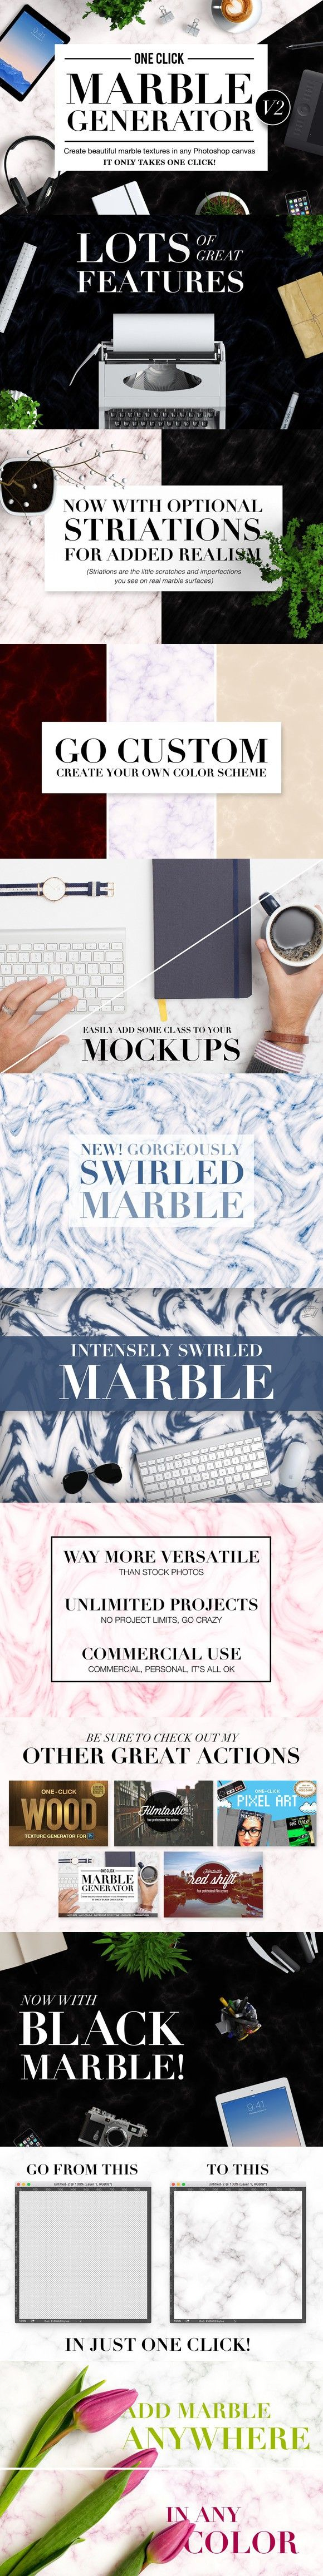 OneClick Marble Texture Generator V2. Actions. $15.00